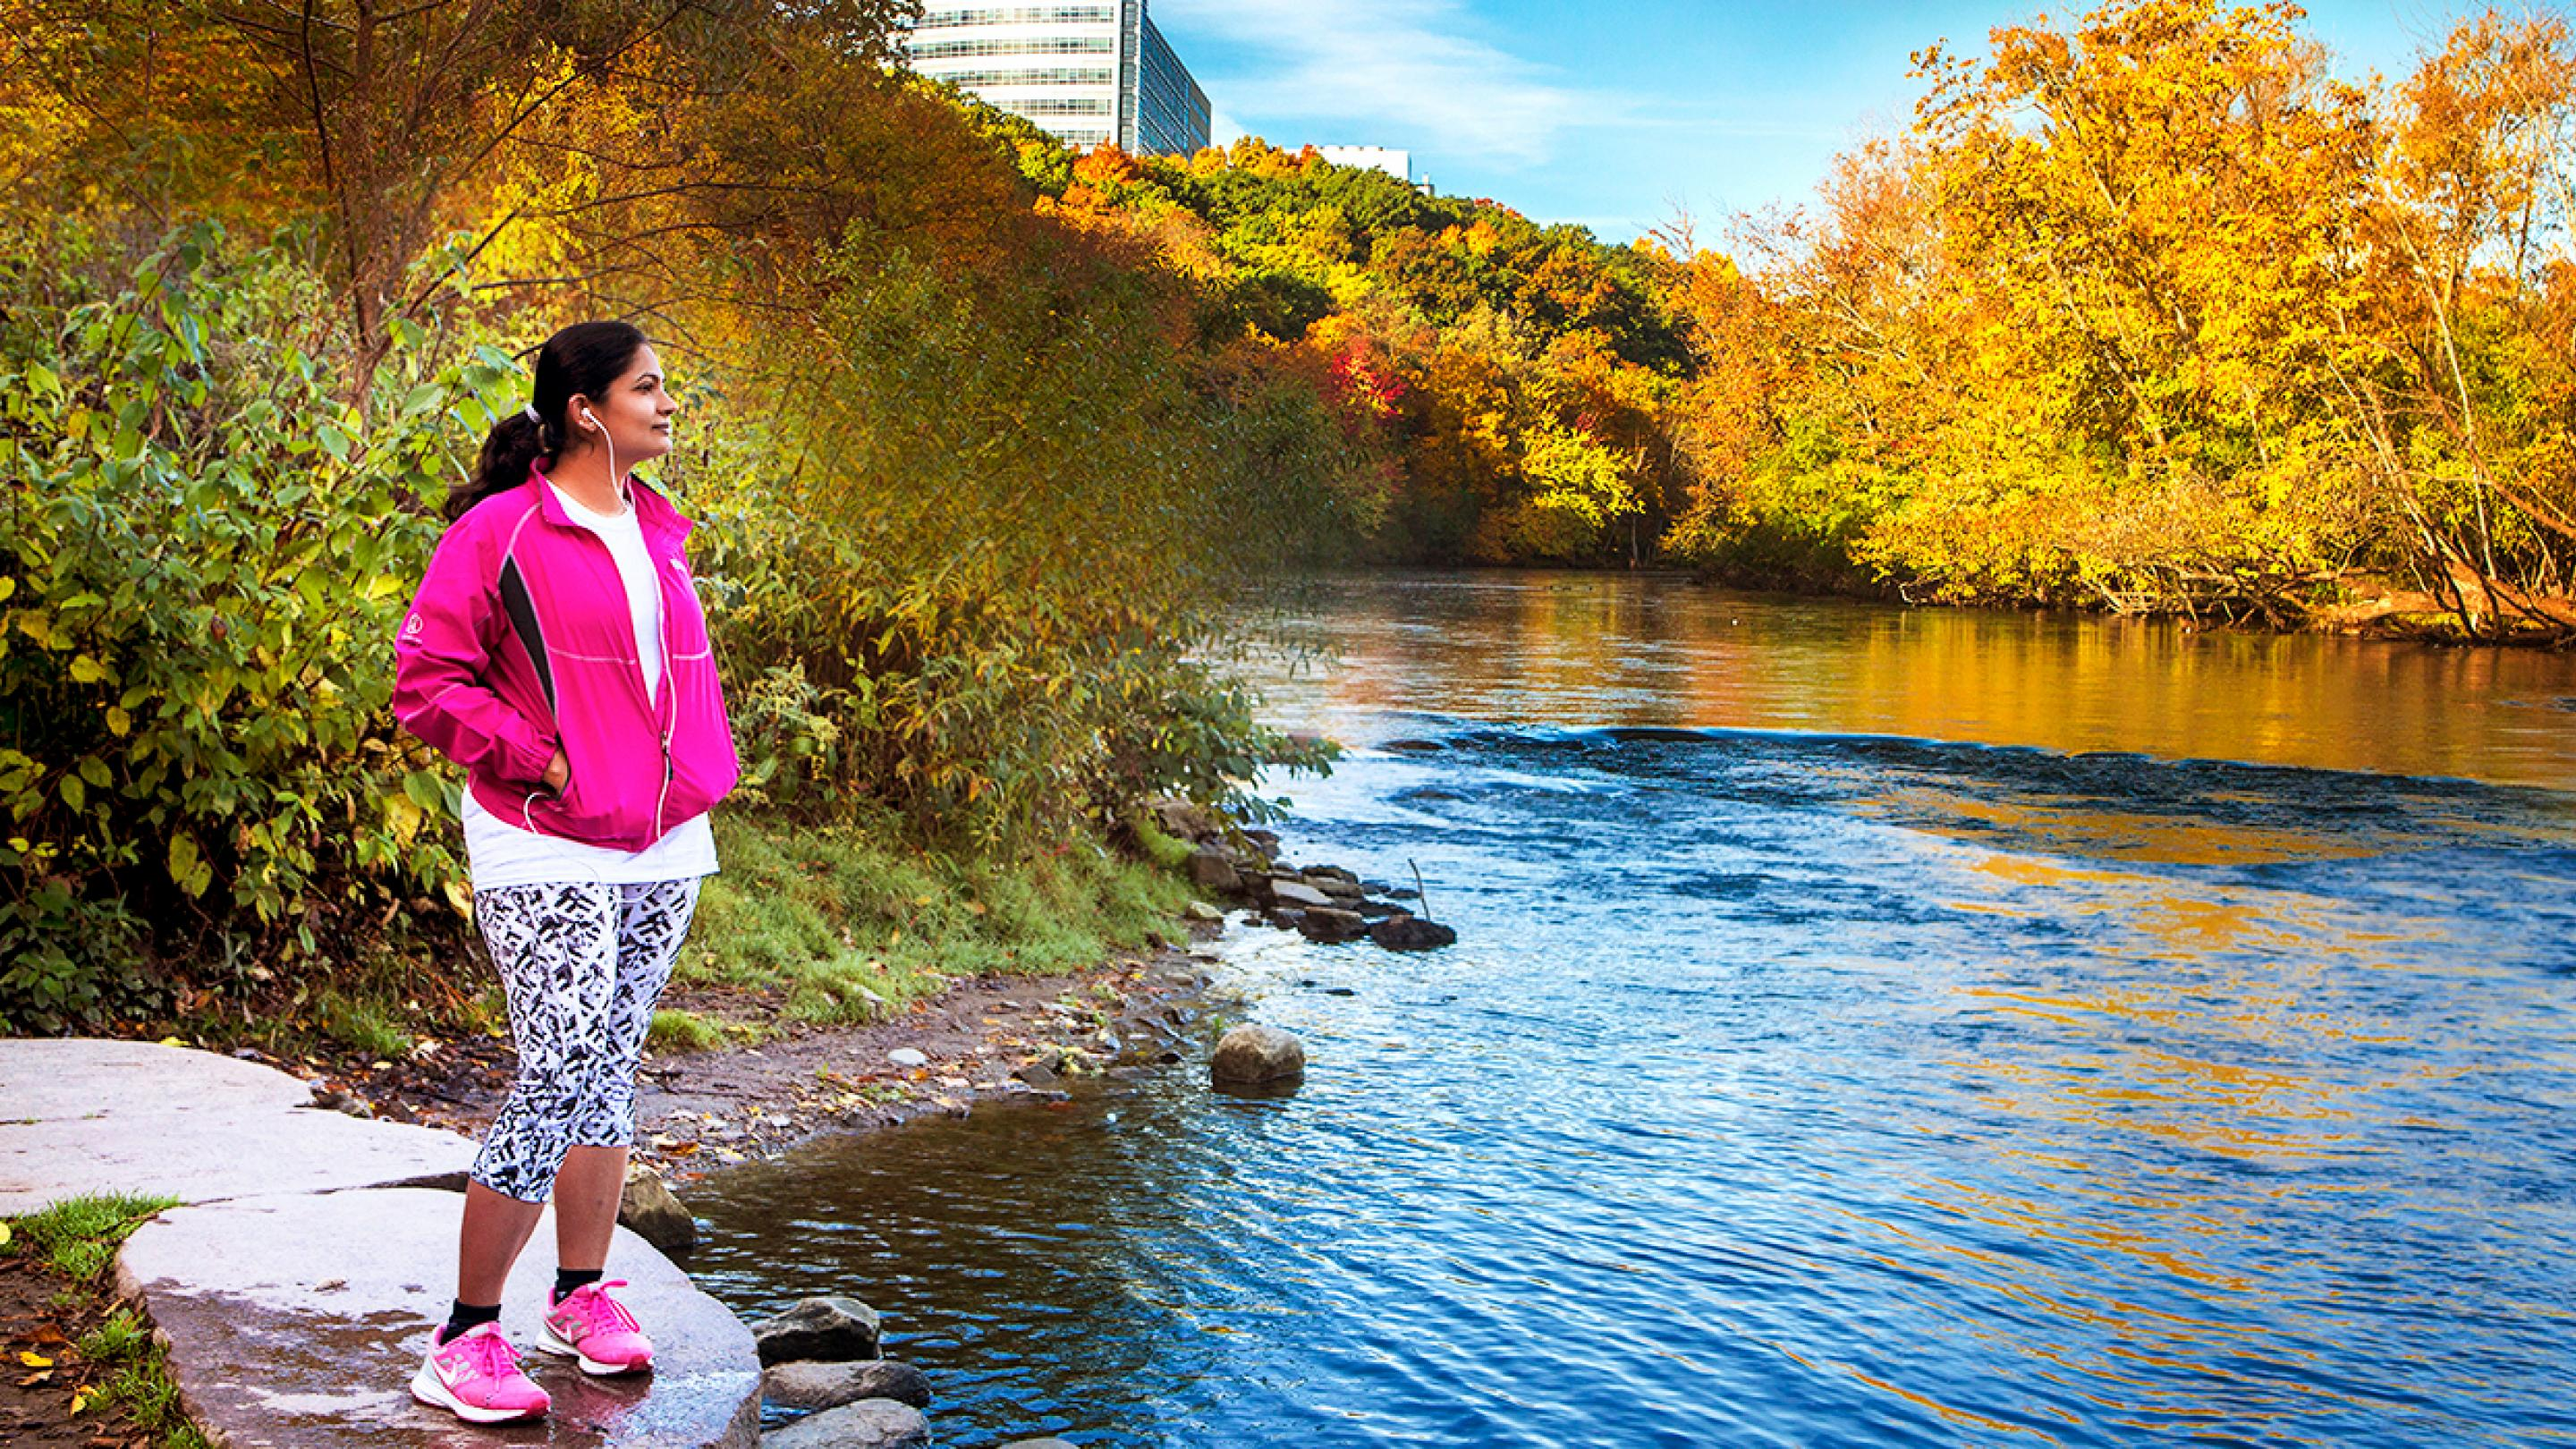 A jogger gazes at the Huron River during autumn in the Ann Arbor Arboretum